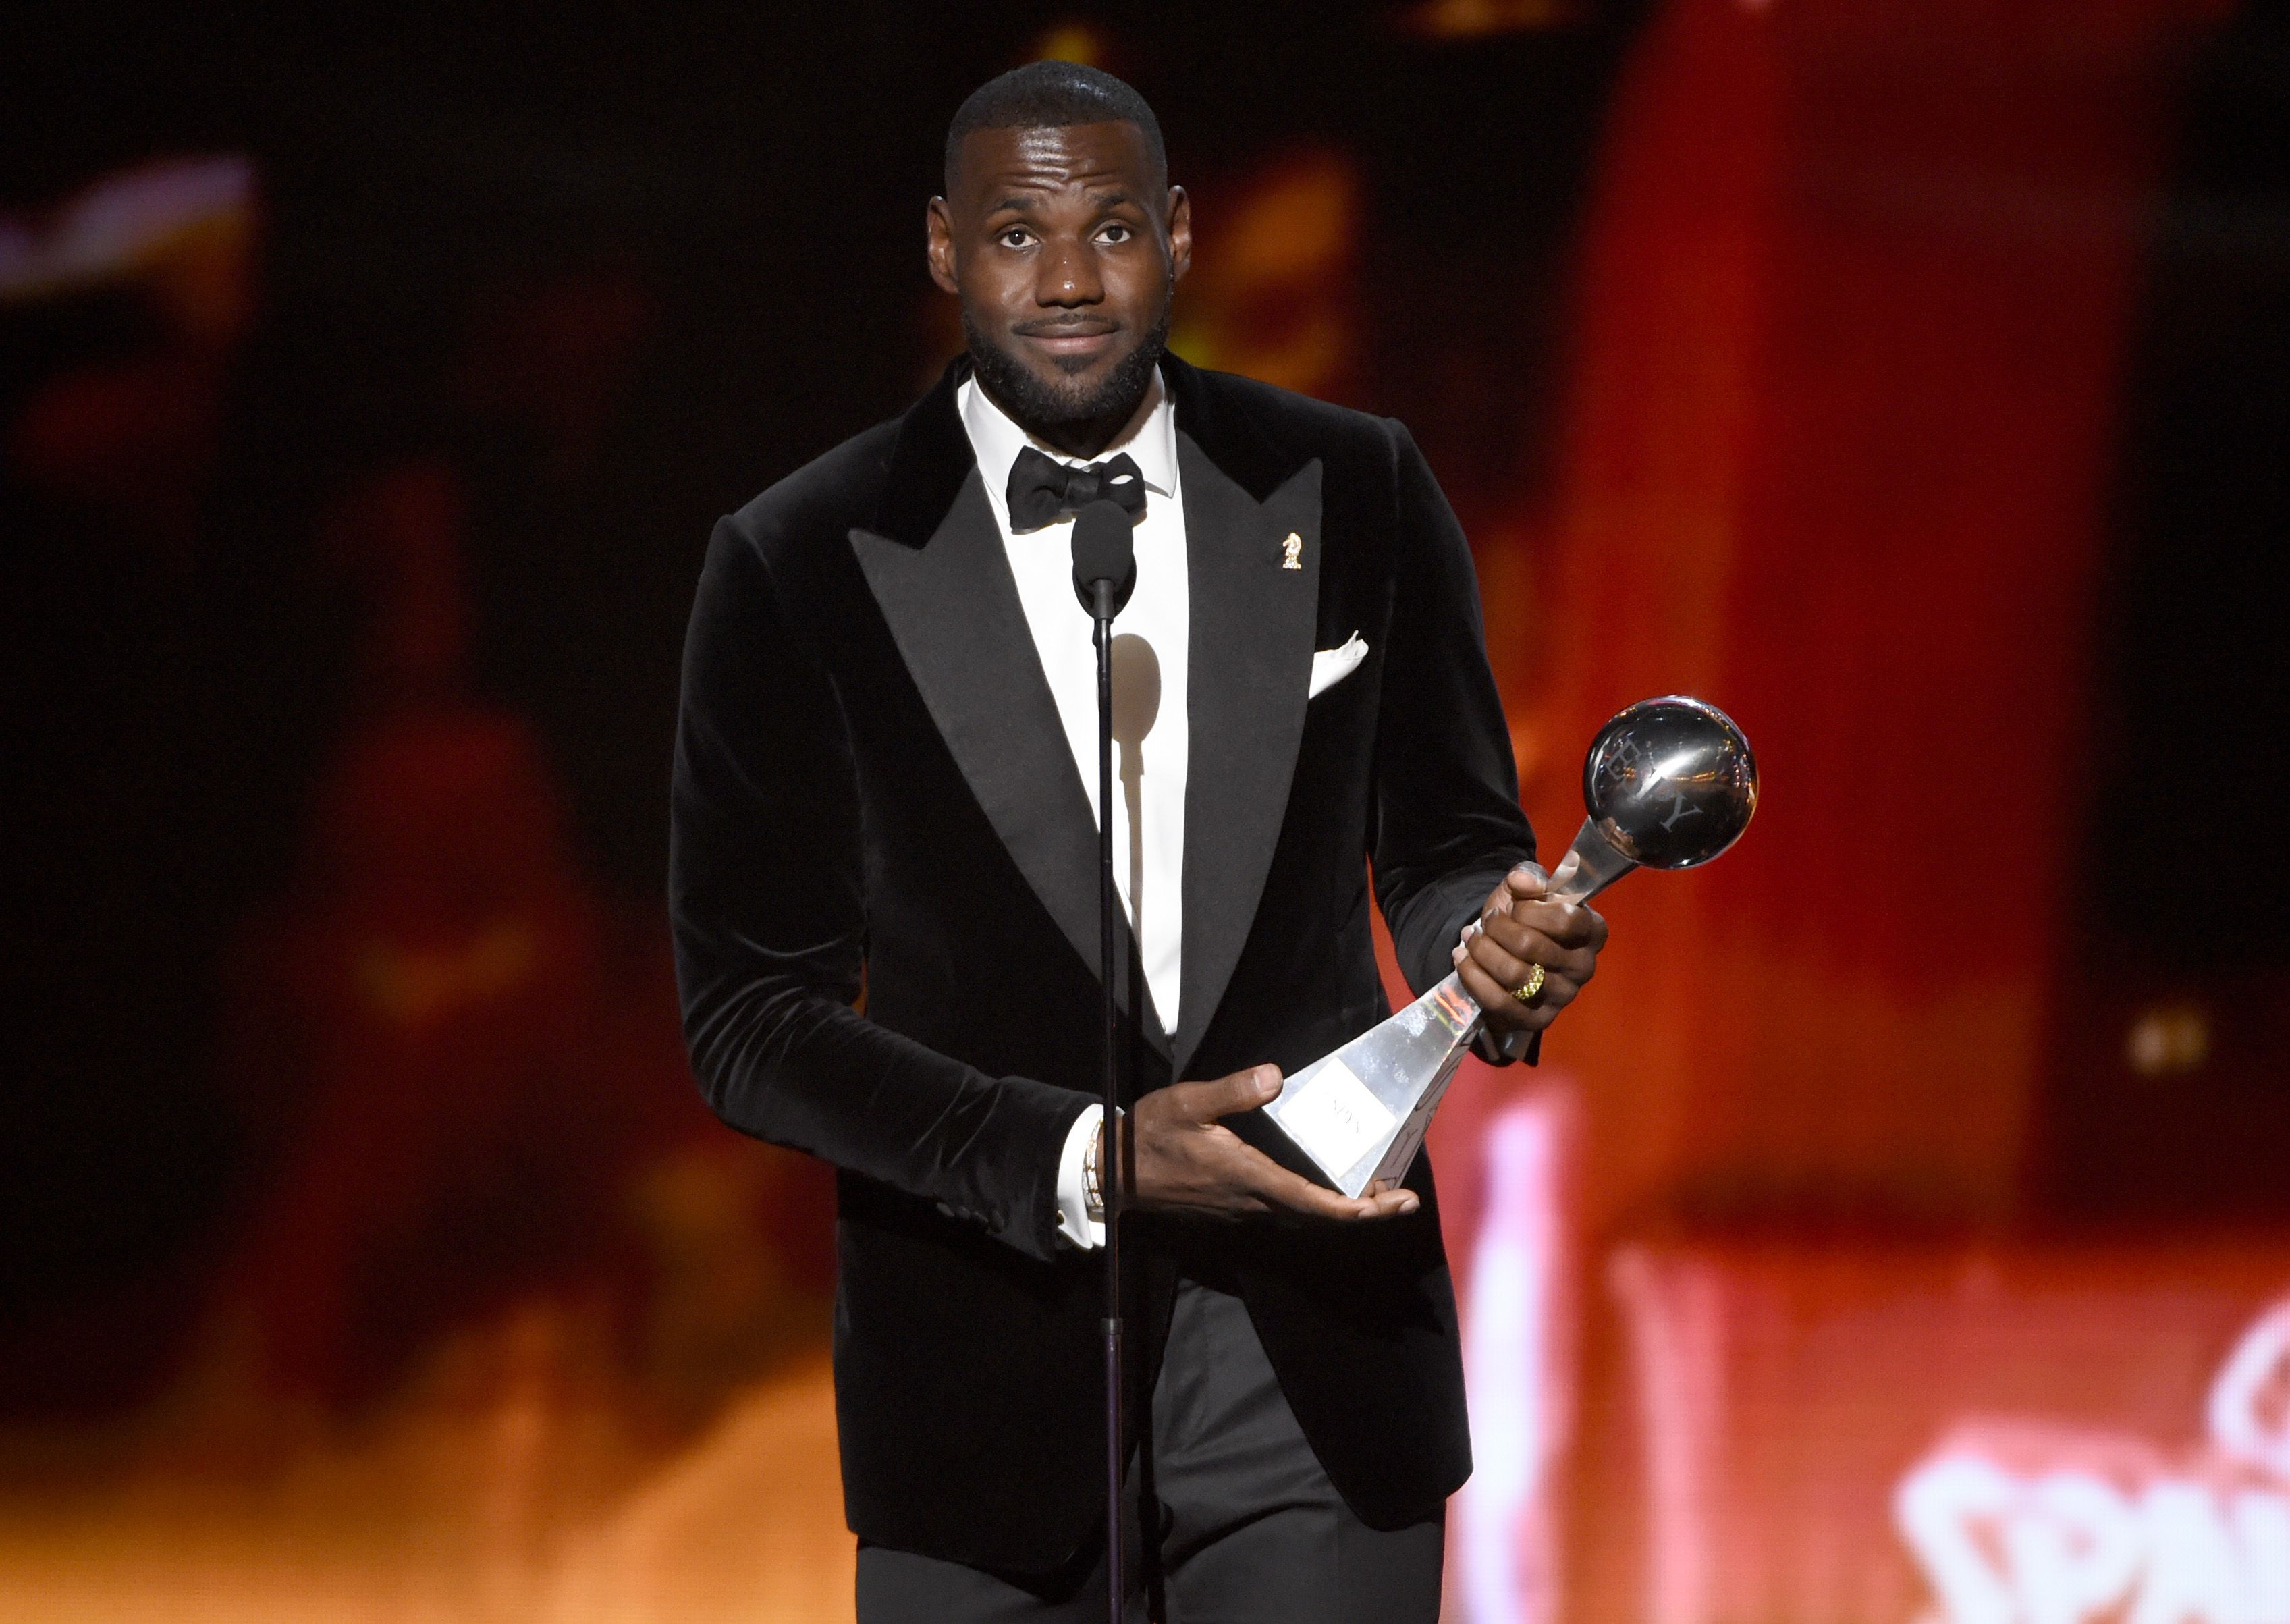 FILE - In this Wed., July 15, 2015 file photo, NBA player LeBron James, of the Cleveland Cavaliers, accepts the award for best championship performance at the ESPY Awards at the Microsoft Theater, in Los Angeles. The NBA star and his company, SpringHill Entertainment, have signed a content creation deal with Warner Bros. that includes potential projects in film, television and other digital properties. Warner Bros. Chairman and CEO Kevin Tsujihara announced the partnership Wednesday, July 22, 2015.